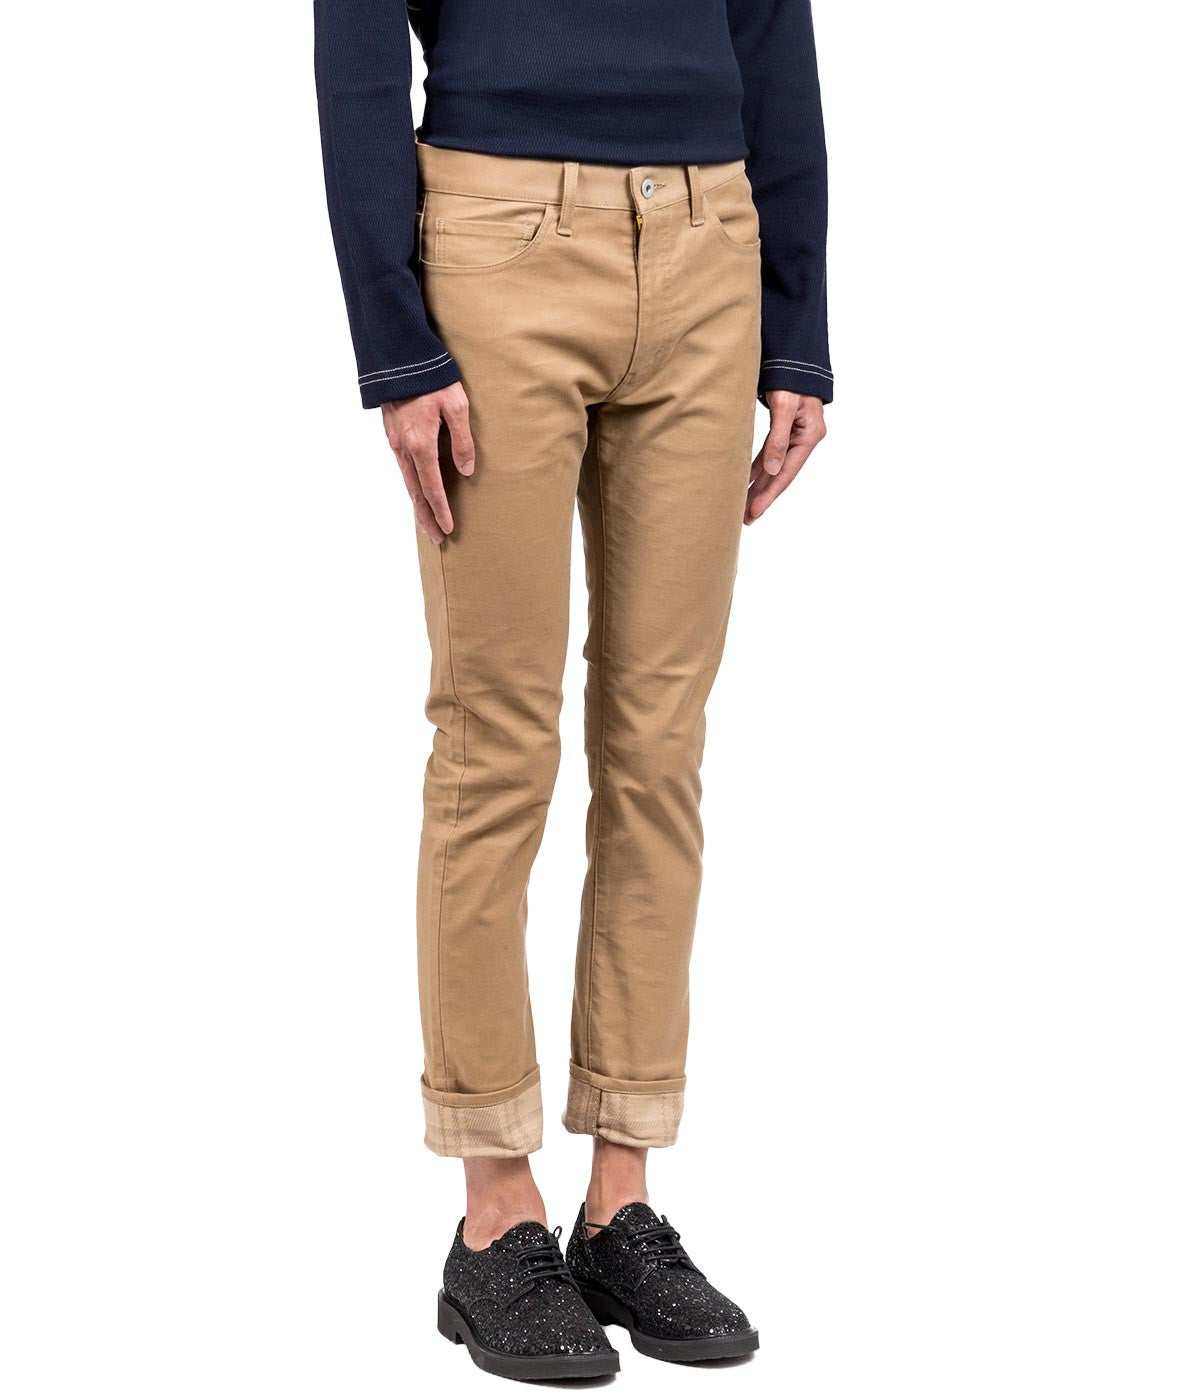 Biege Cropped Casual Pants